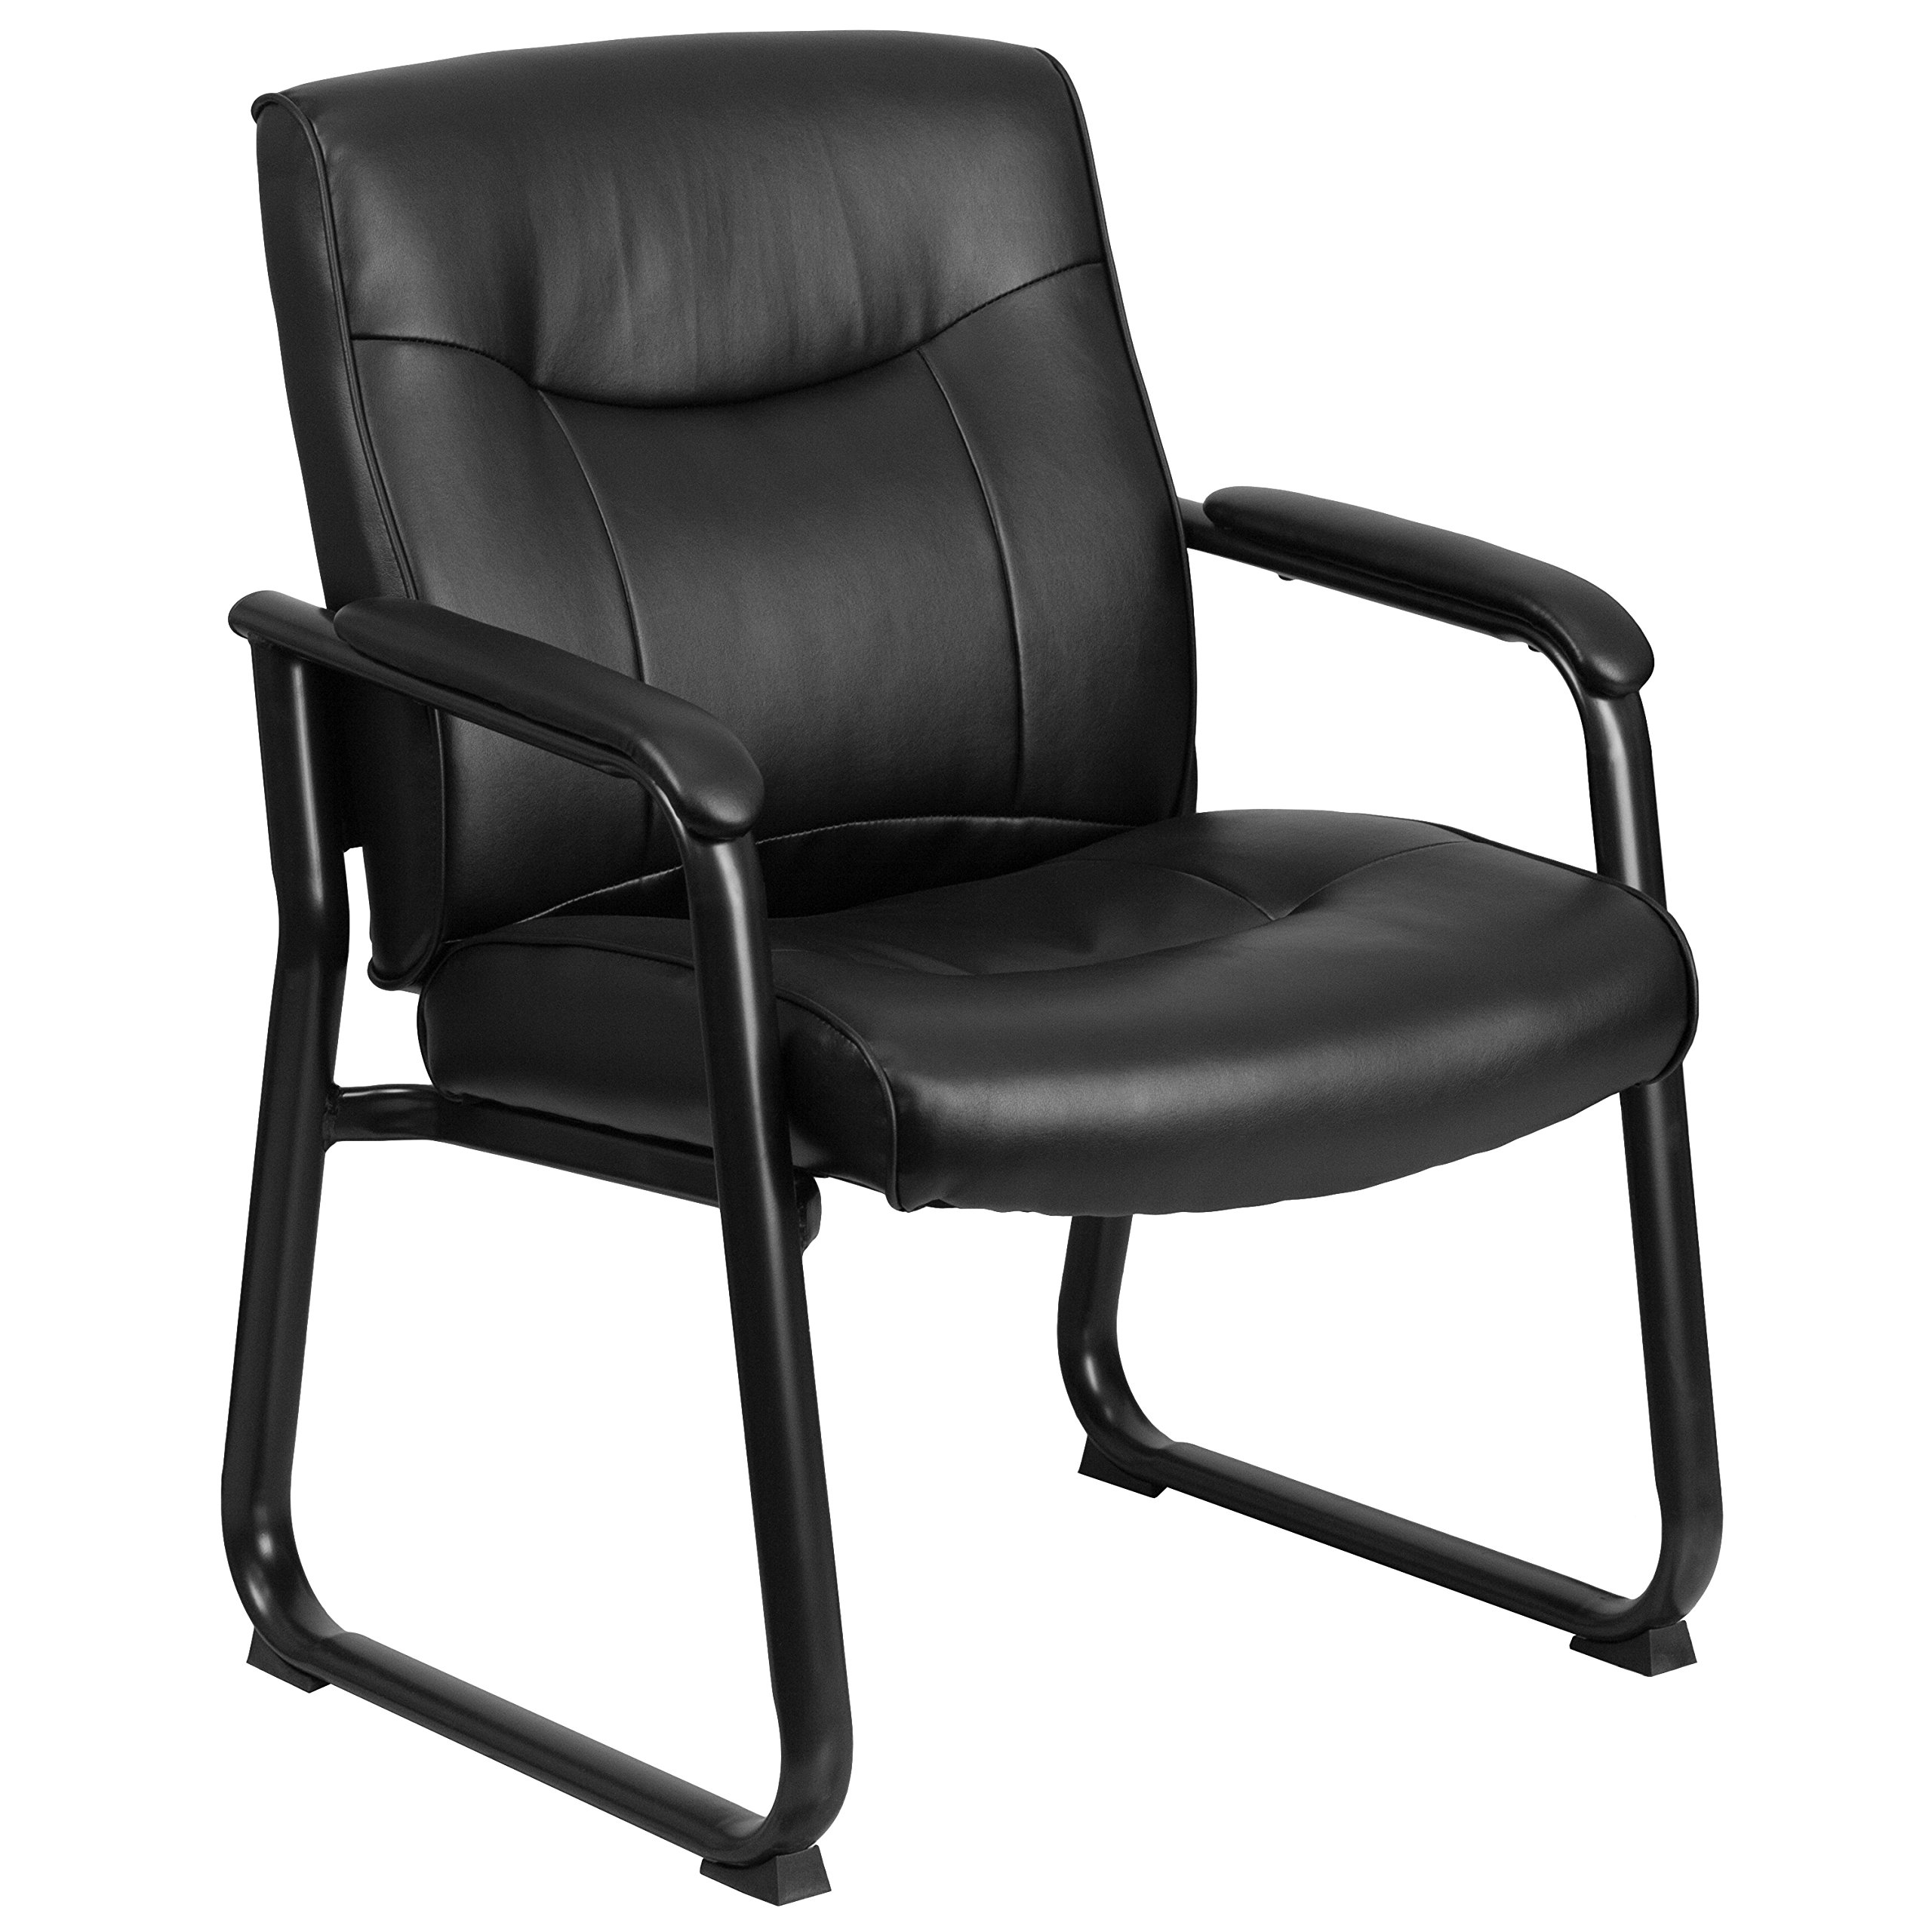 Flash Furniture Hercules Series Big and Tall Leather Executive Side Chair with Sled Base and Padded Arms, 500-Pound, Black - GO-2136-GG by Flash Furniture